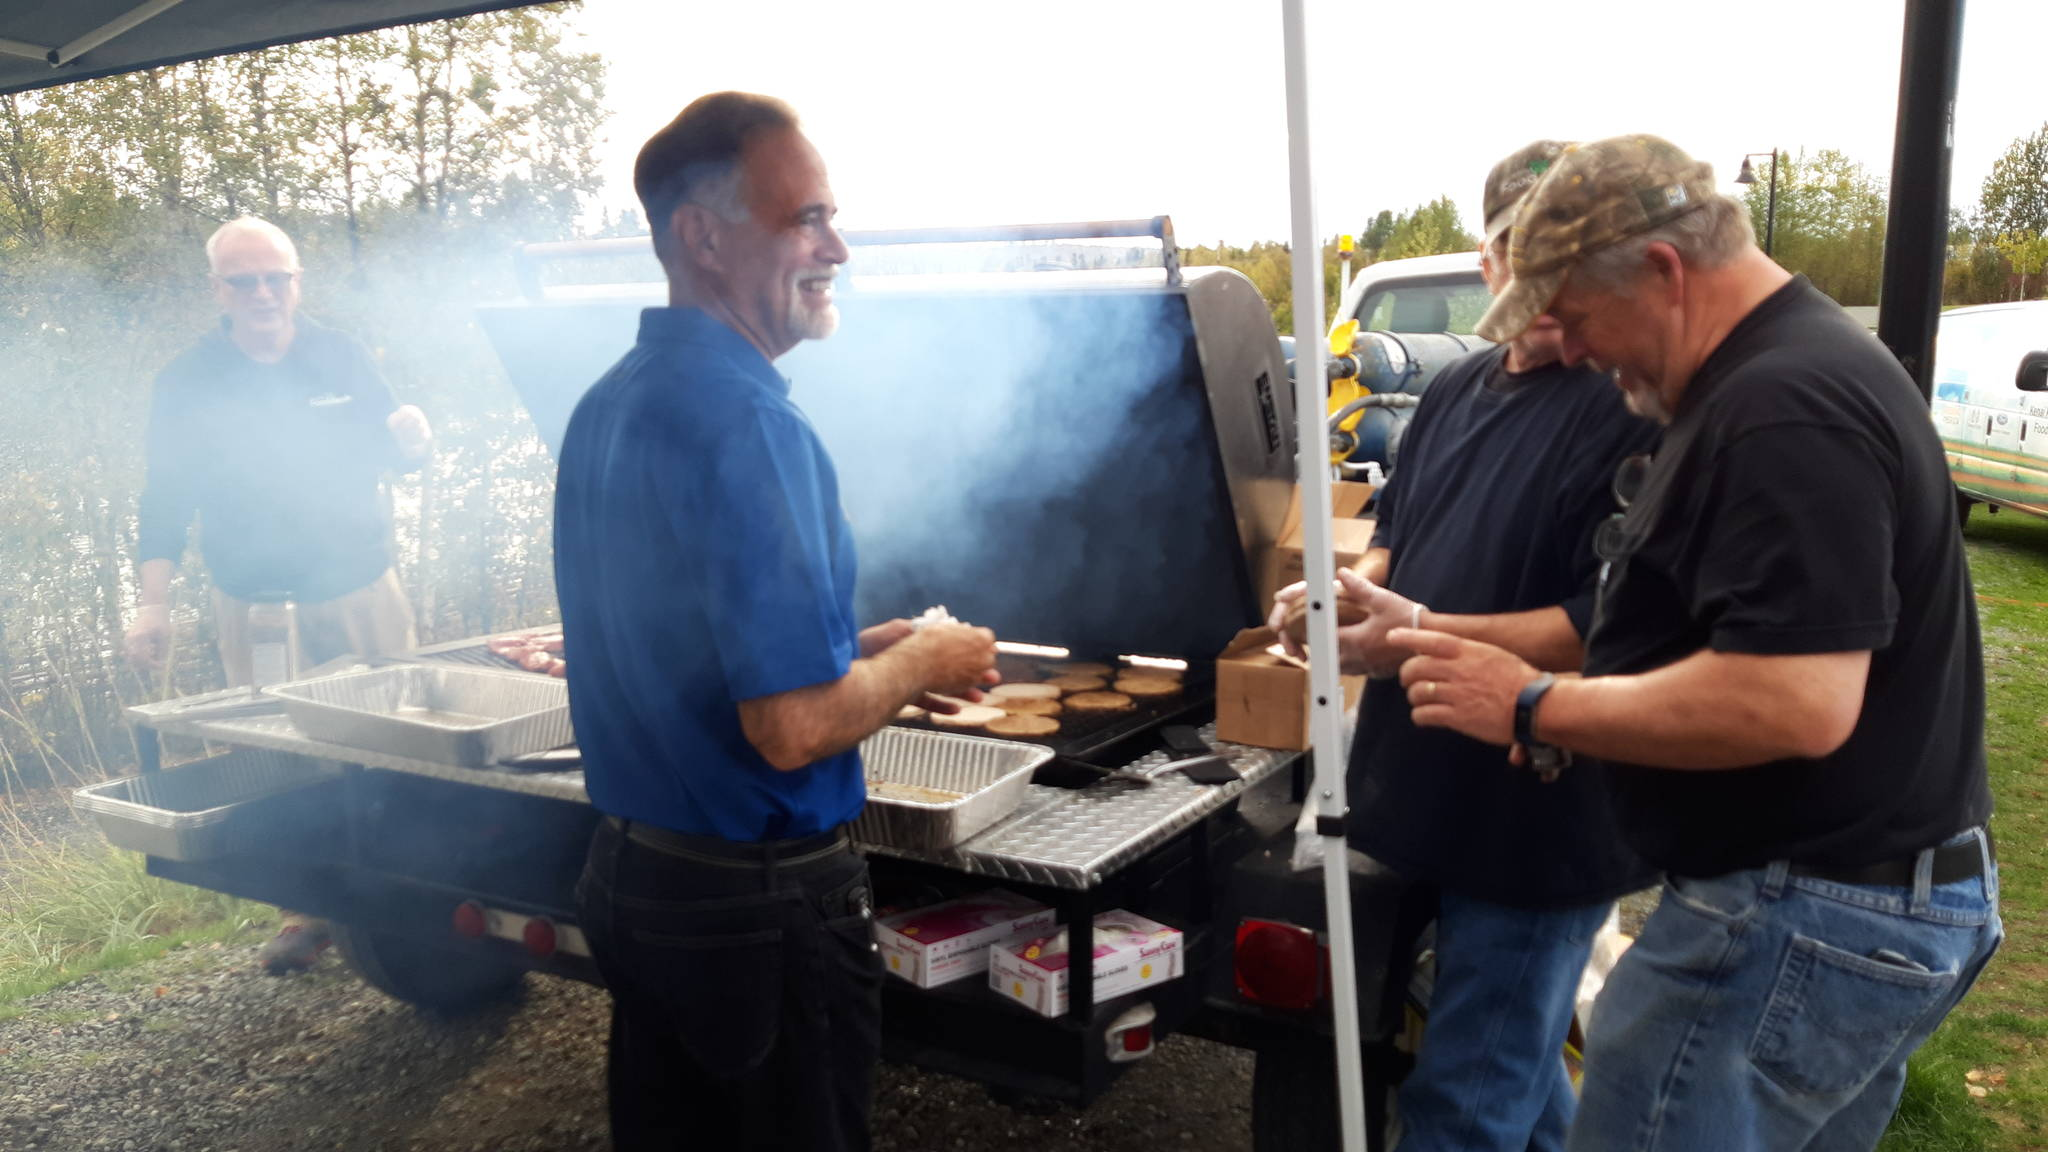 Sen. Peter Micciche, R-Soldotna, mans the grill with other volunteers during the first responder appreciation barbecue at Soldotna Creek Park on Monday, Sept. 9, 2019 in Soldotna, Alaska. (Photo by Brian Mazurek/Peninsula Clarion)